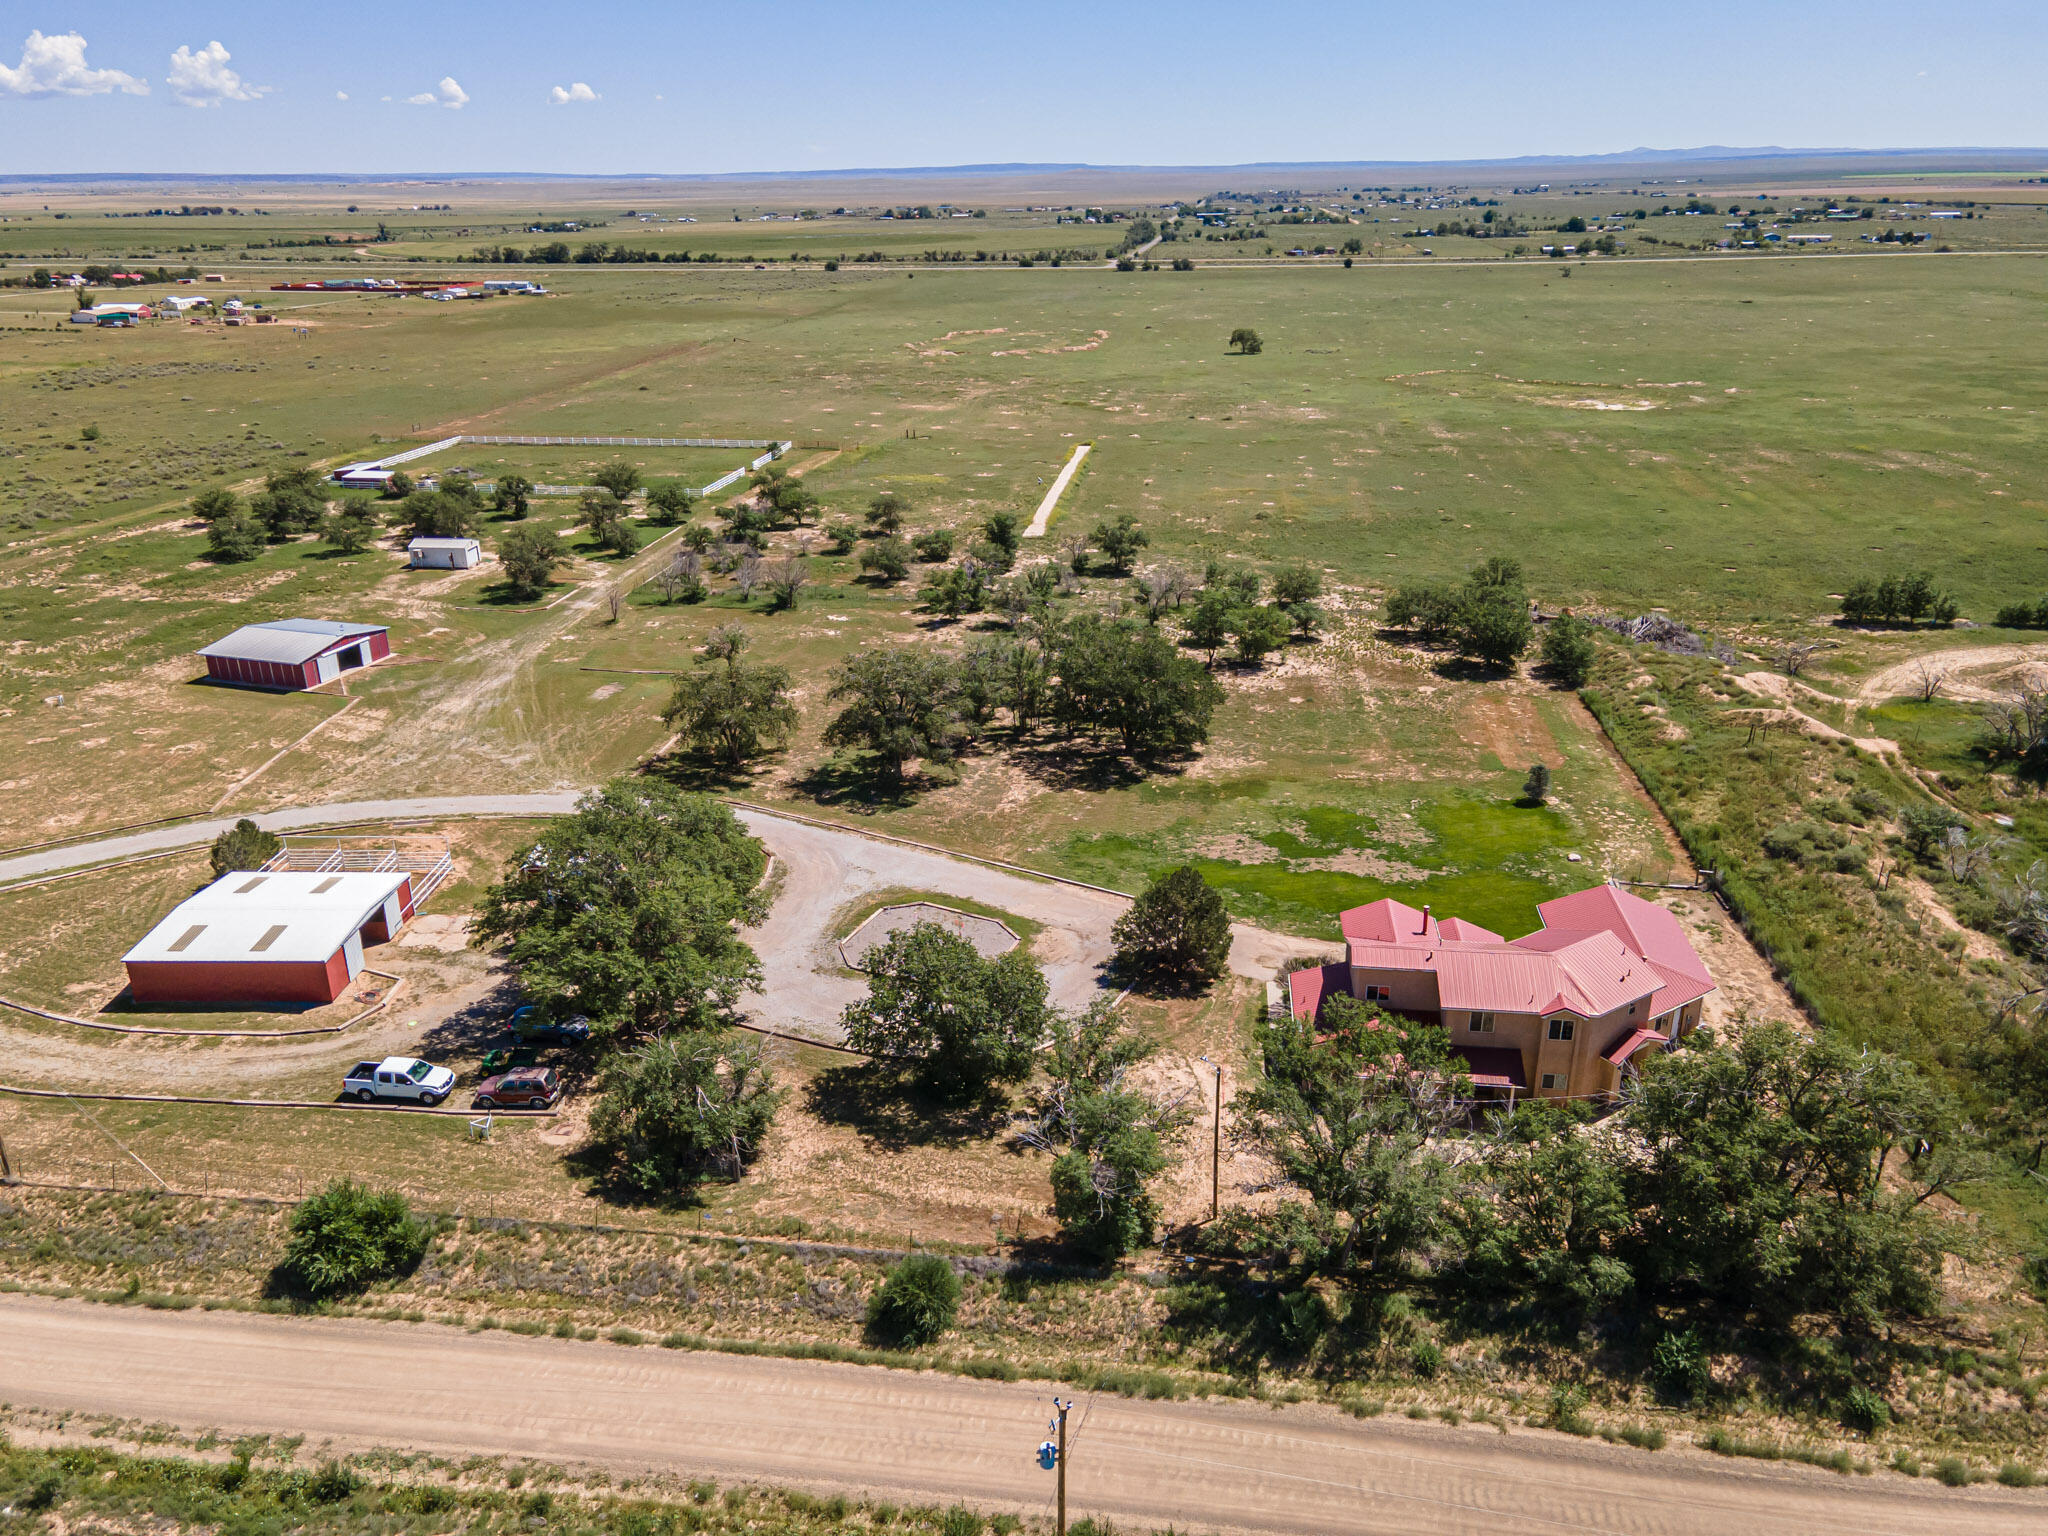 This deluxe horse property with Manzano Mountain views near Moriarty, New Mexico has it all - 50.72 acres with 114.3 acre feet of irrigated licensed water rights. Grow your own feed or set it up for irrigated permanent pasture. 3-phase power has been run, but is not fully connected. There are two good wells, irrigation and domestic. Both wells produce good high quality water. In fact, the water is so good that the water building has equipment for processing and bottling water and could support a related business. The horse facilities consist of a 3-stall barn, a 4-stall barn and a beautiful arena with 4 loafing sheds. The property is fully fenced and x-fenced, has mature trees and a lovely 2945 square foot 4-bedroom, 4-bath home. See additional information in the DOCUMENTS tab. Wow - what